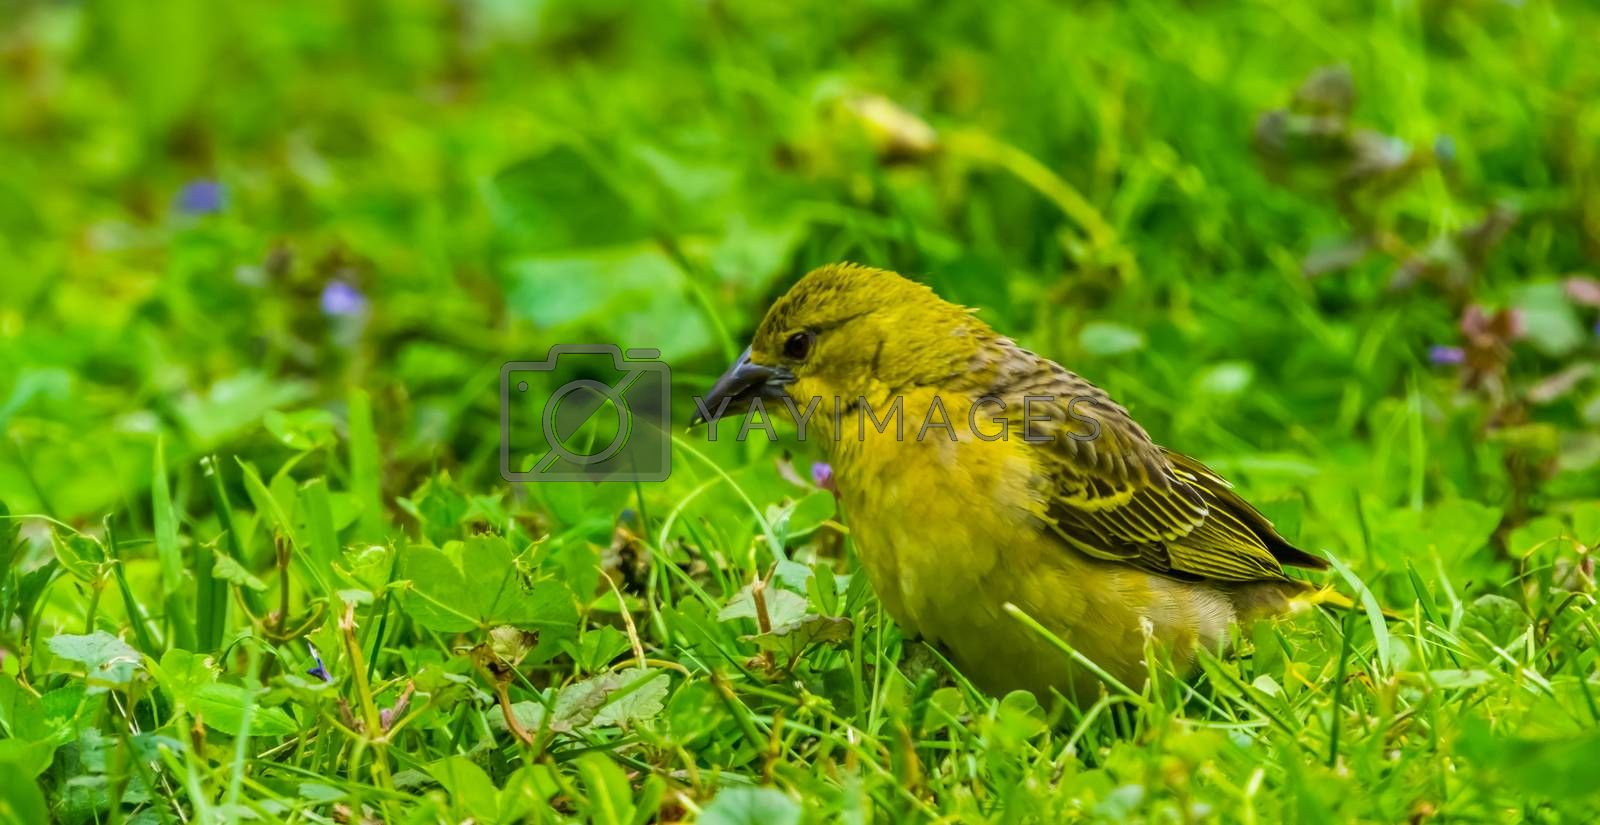 closeup of a yellow female weaver bird standing in the grass, tropical bird specie from Africa